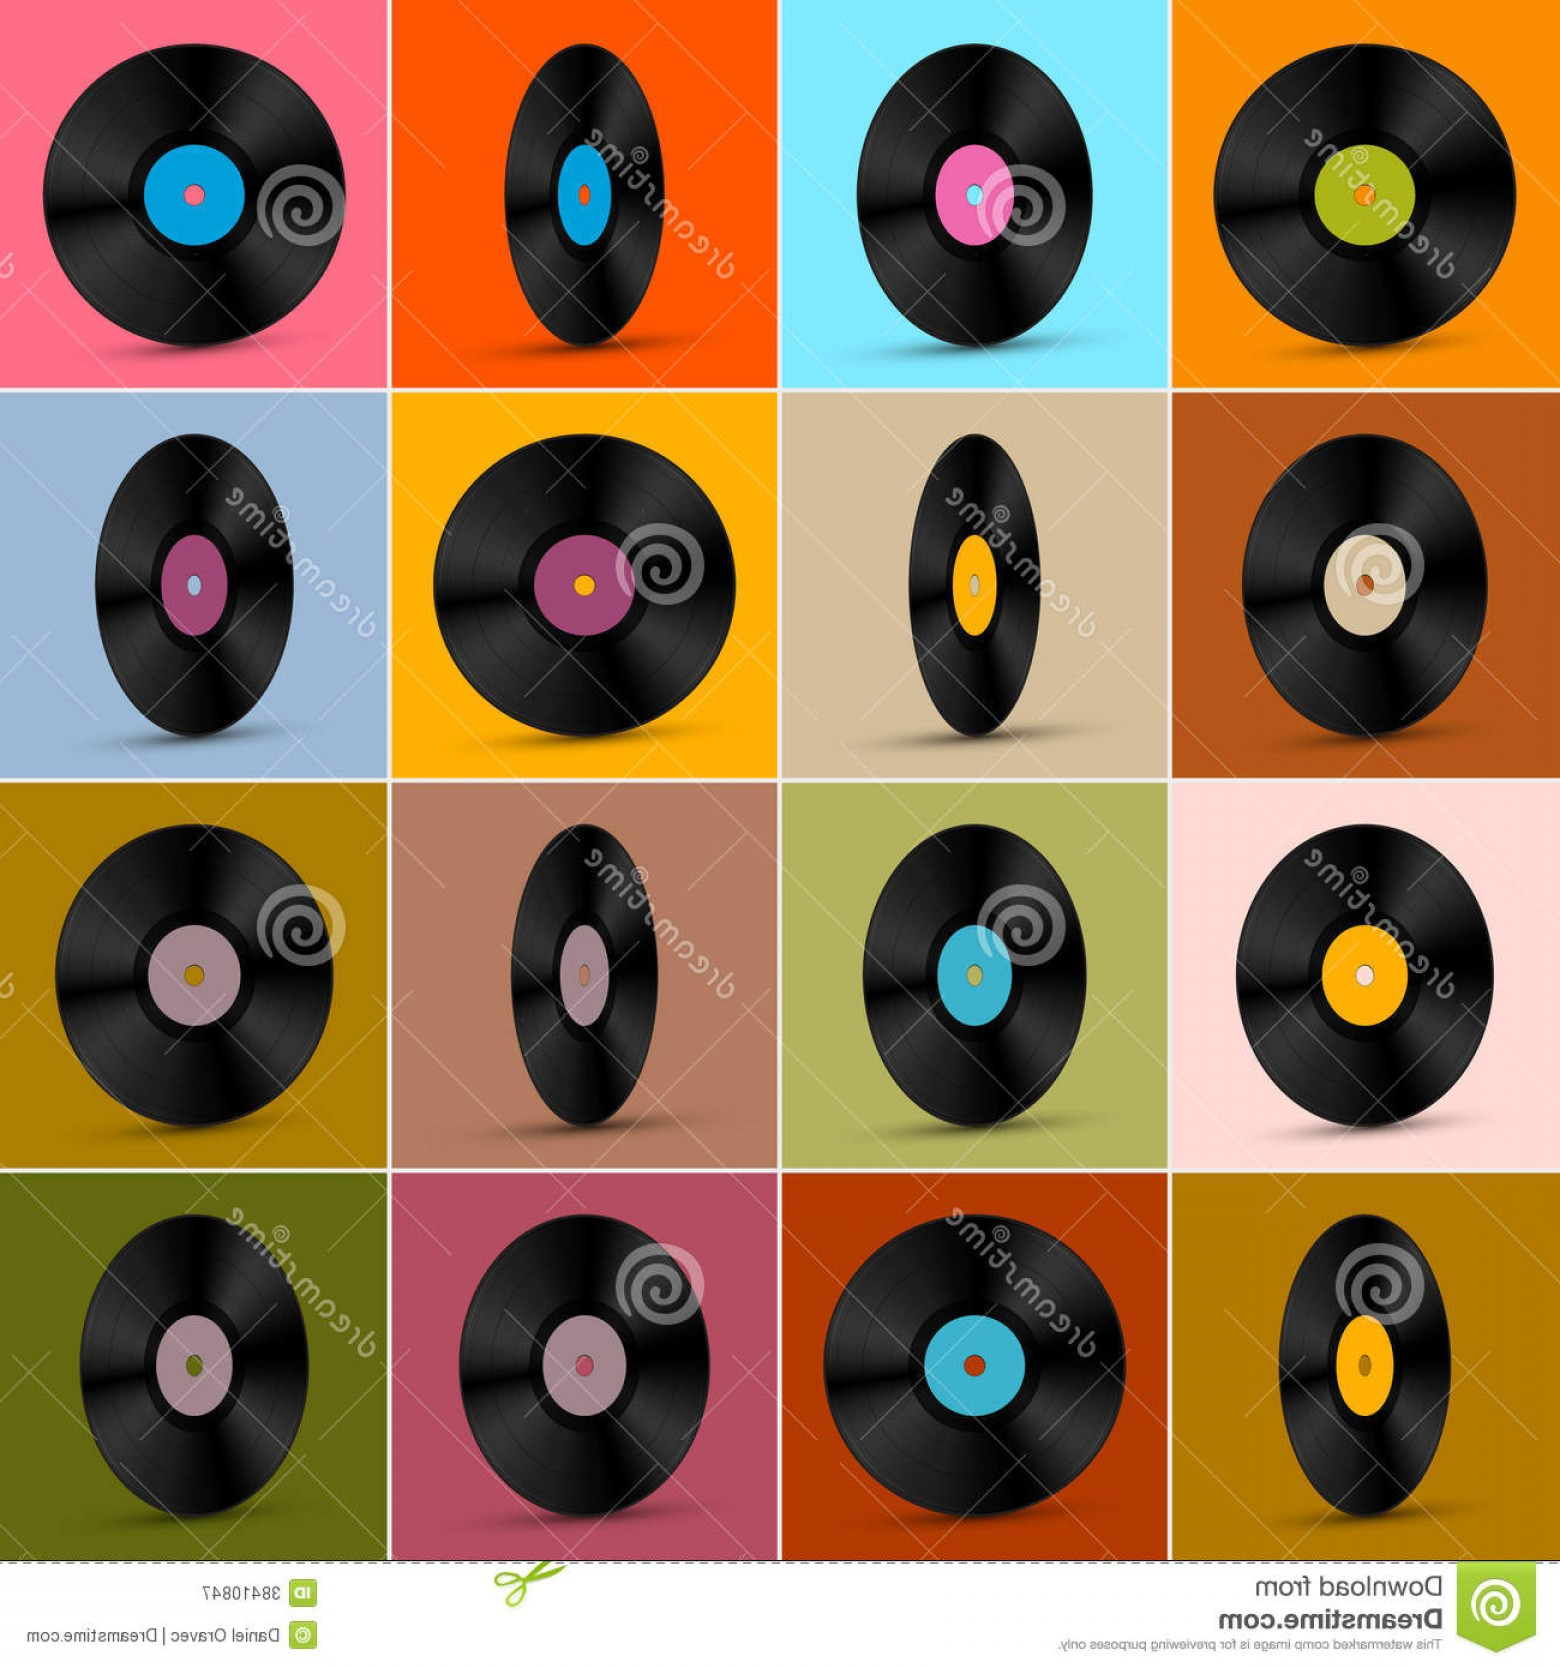 Vinyl Vector Tools: Royalty Free Stock Photography Vector Vinyl Record Disc Background Retro Vintage Image